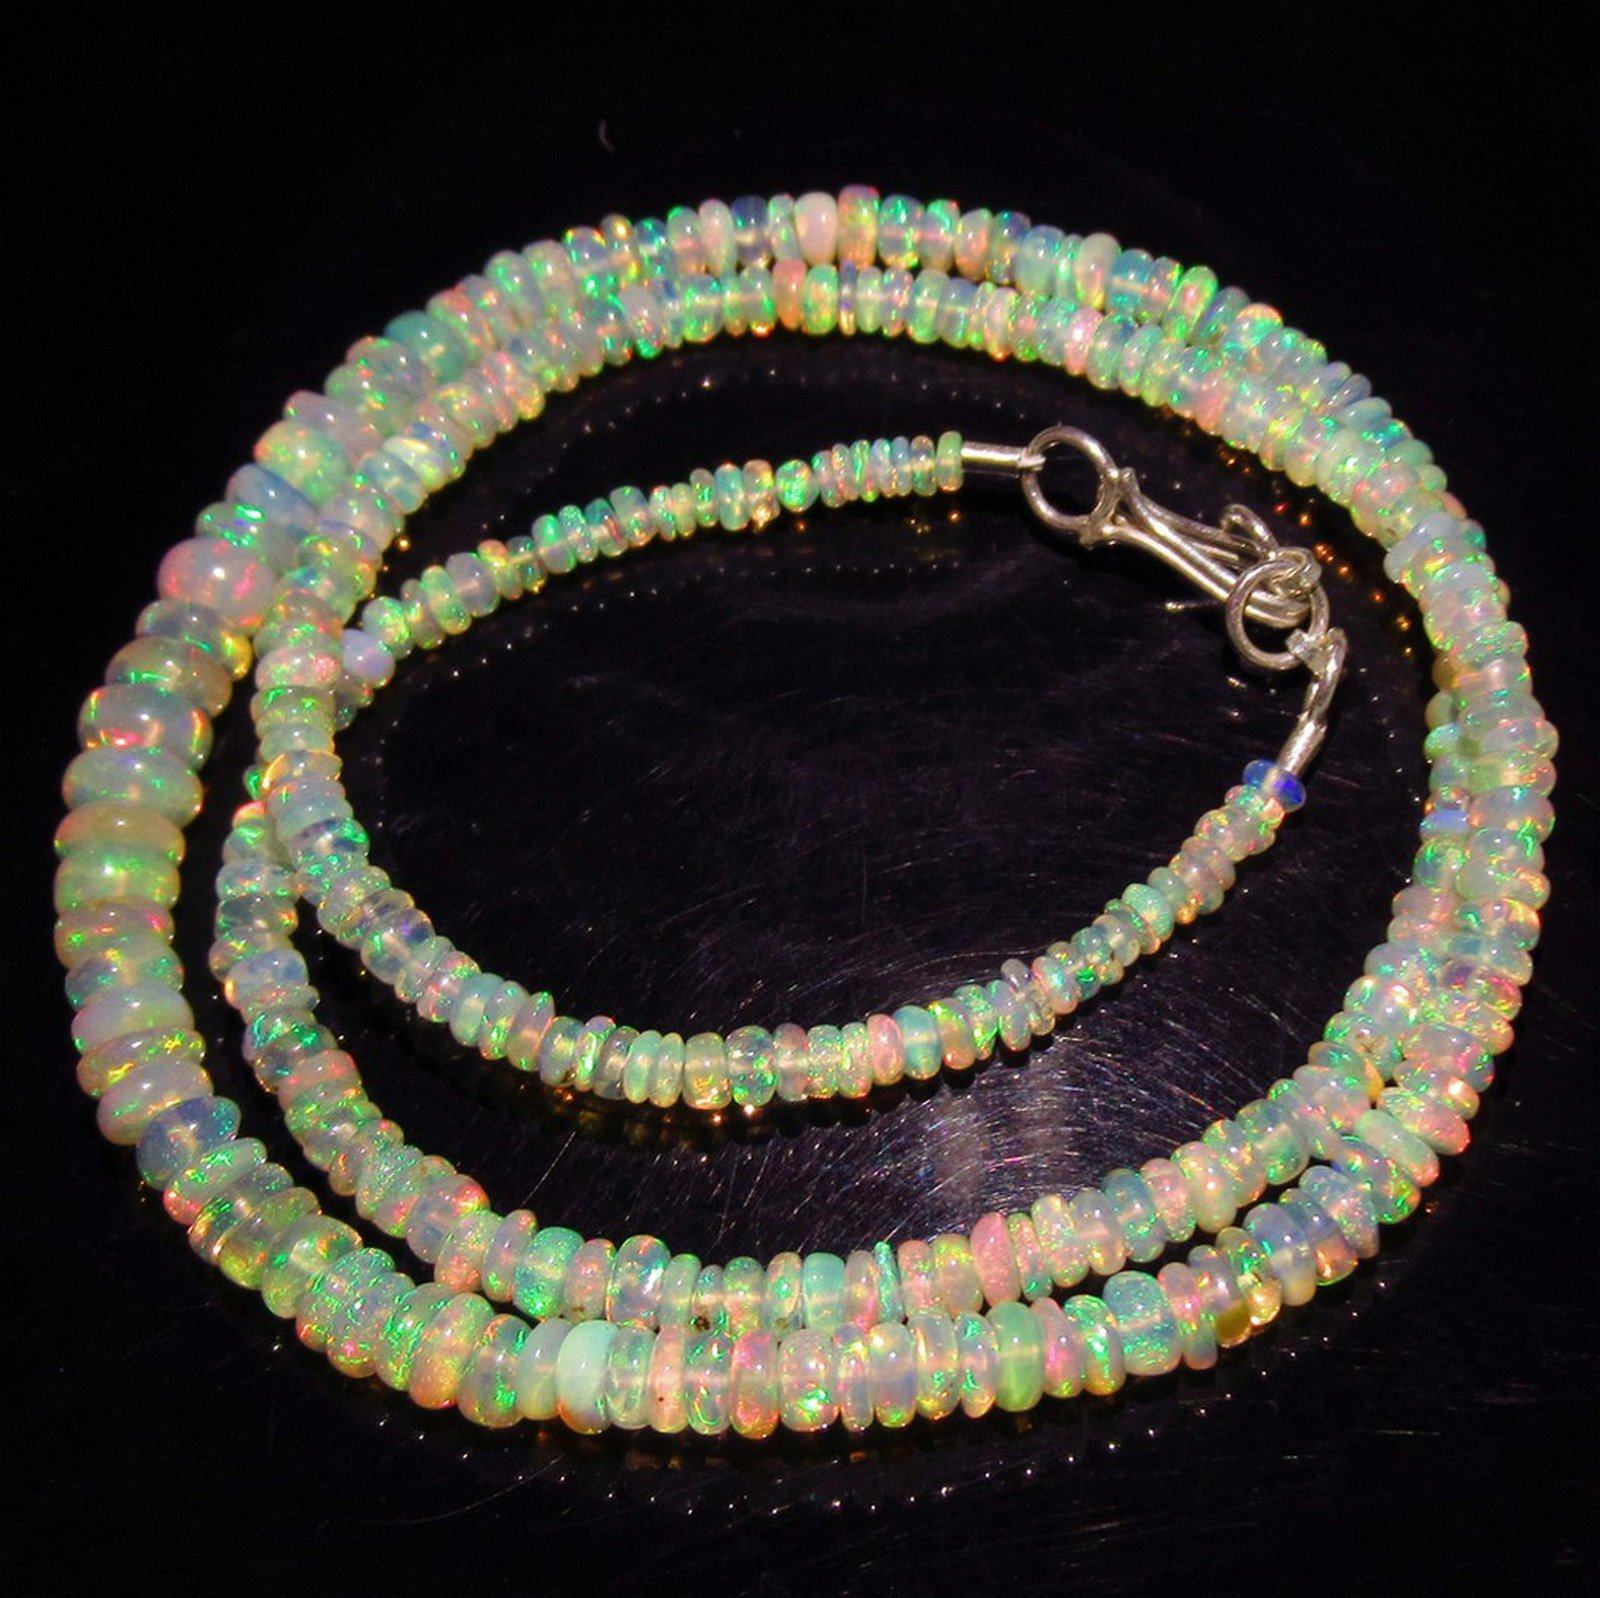 36.79 Ct 925 Silver Genuine 290 Opal Beads Necklace